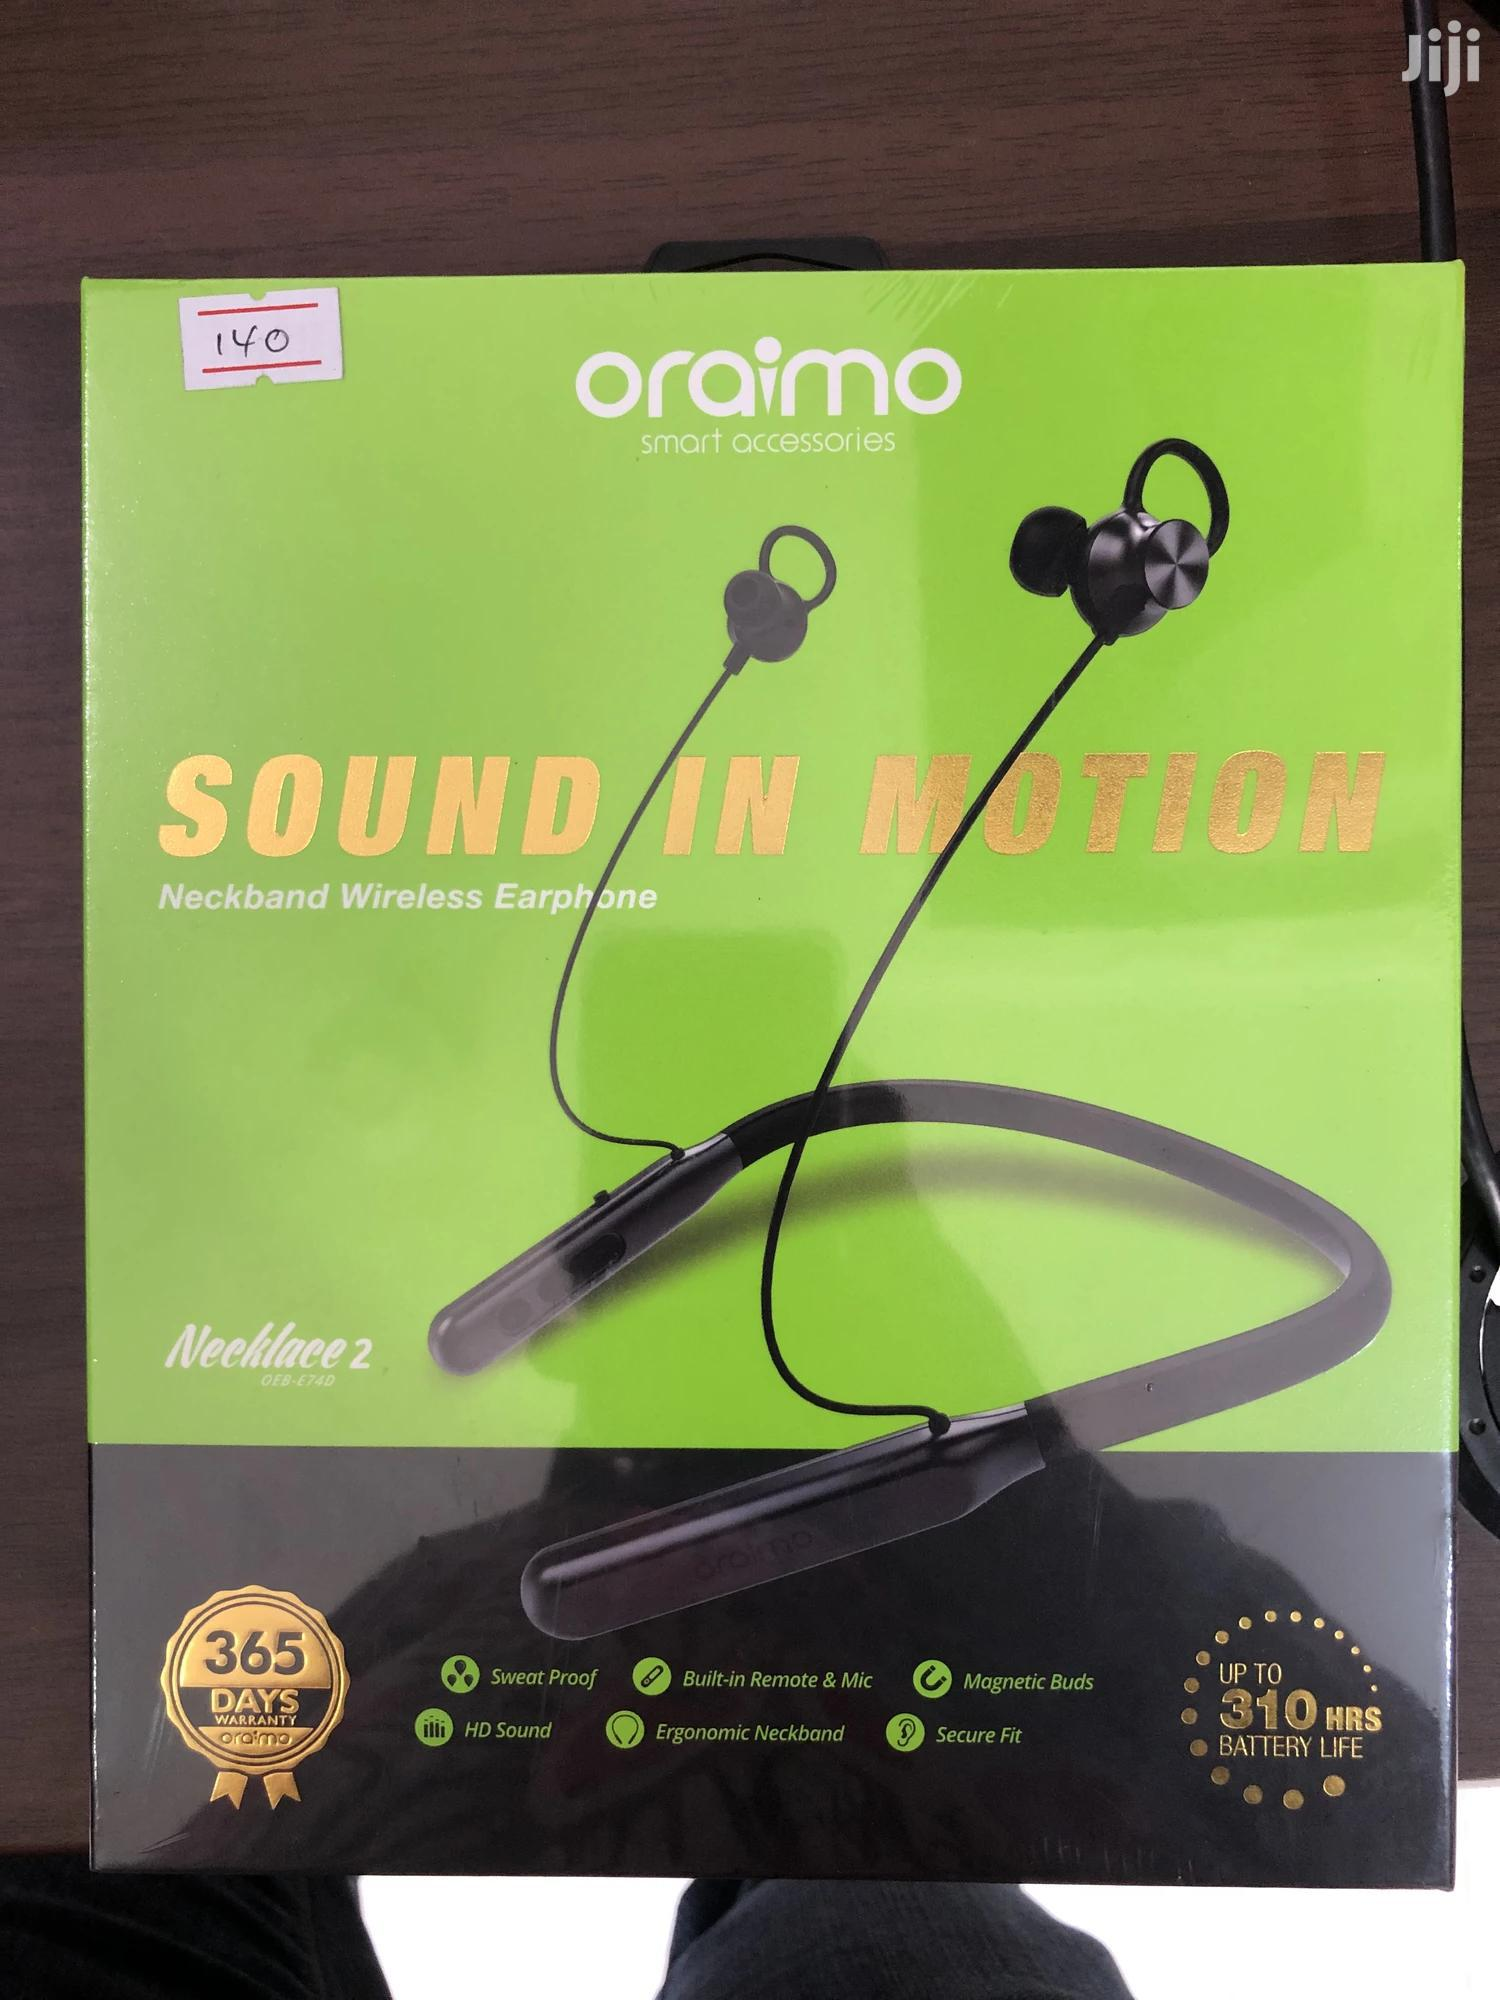 Oraimo Necklace 2 Heavy Bass Bluetooth Headset